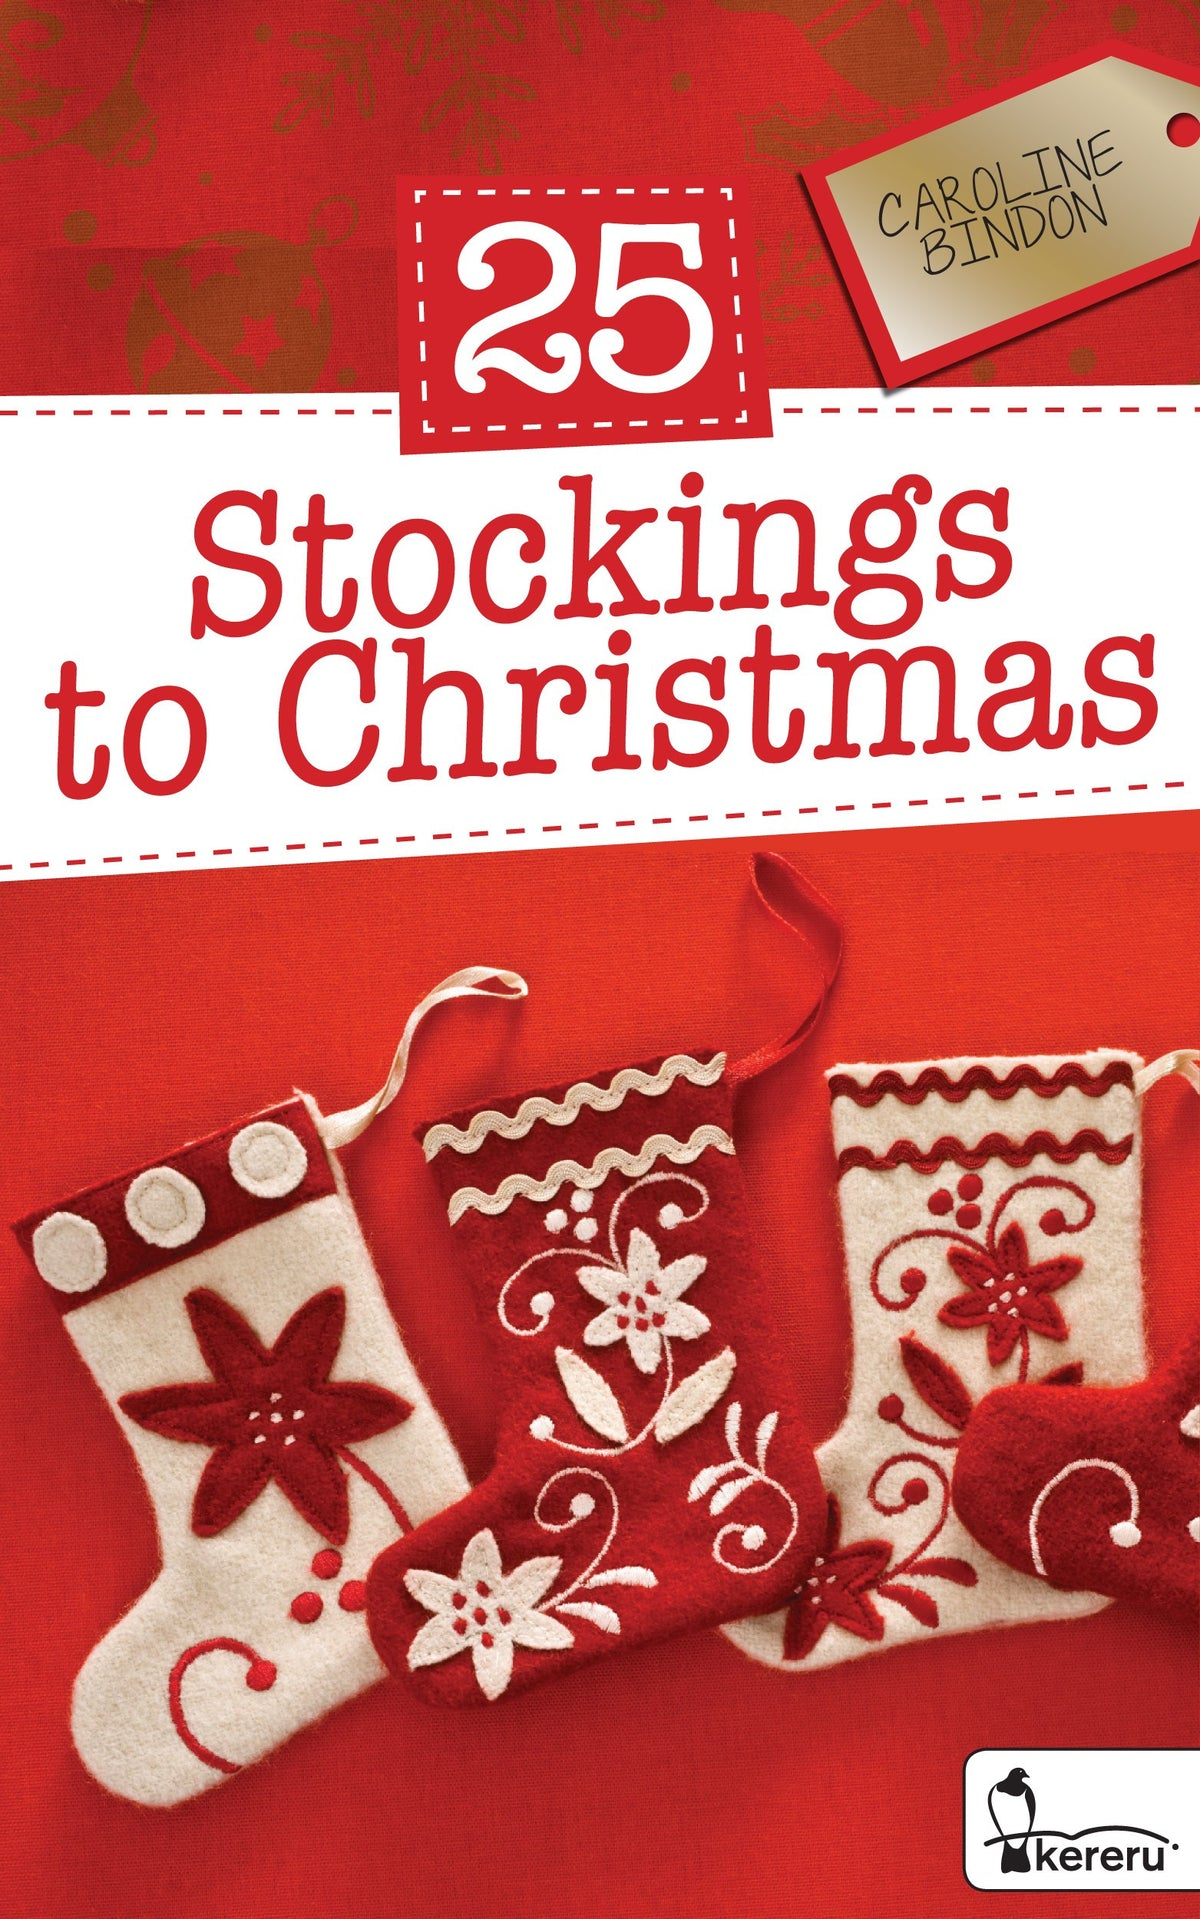 25 Stockings to Christmas